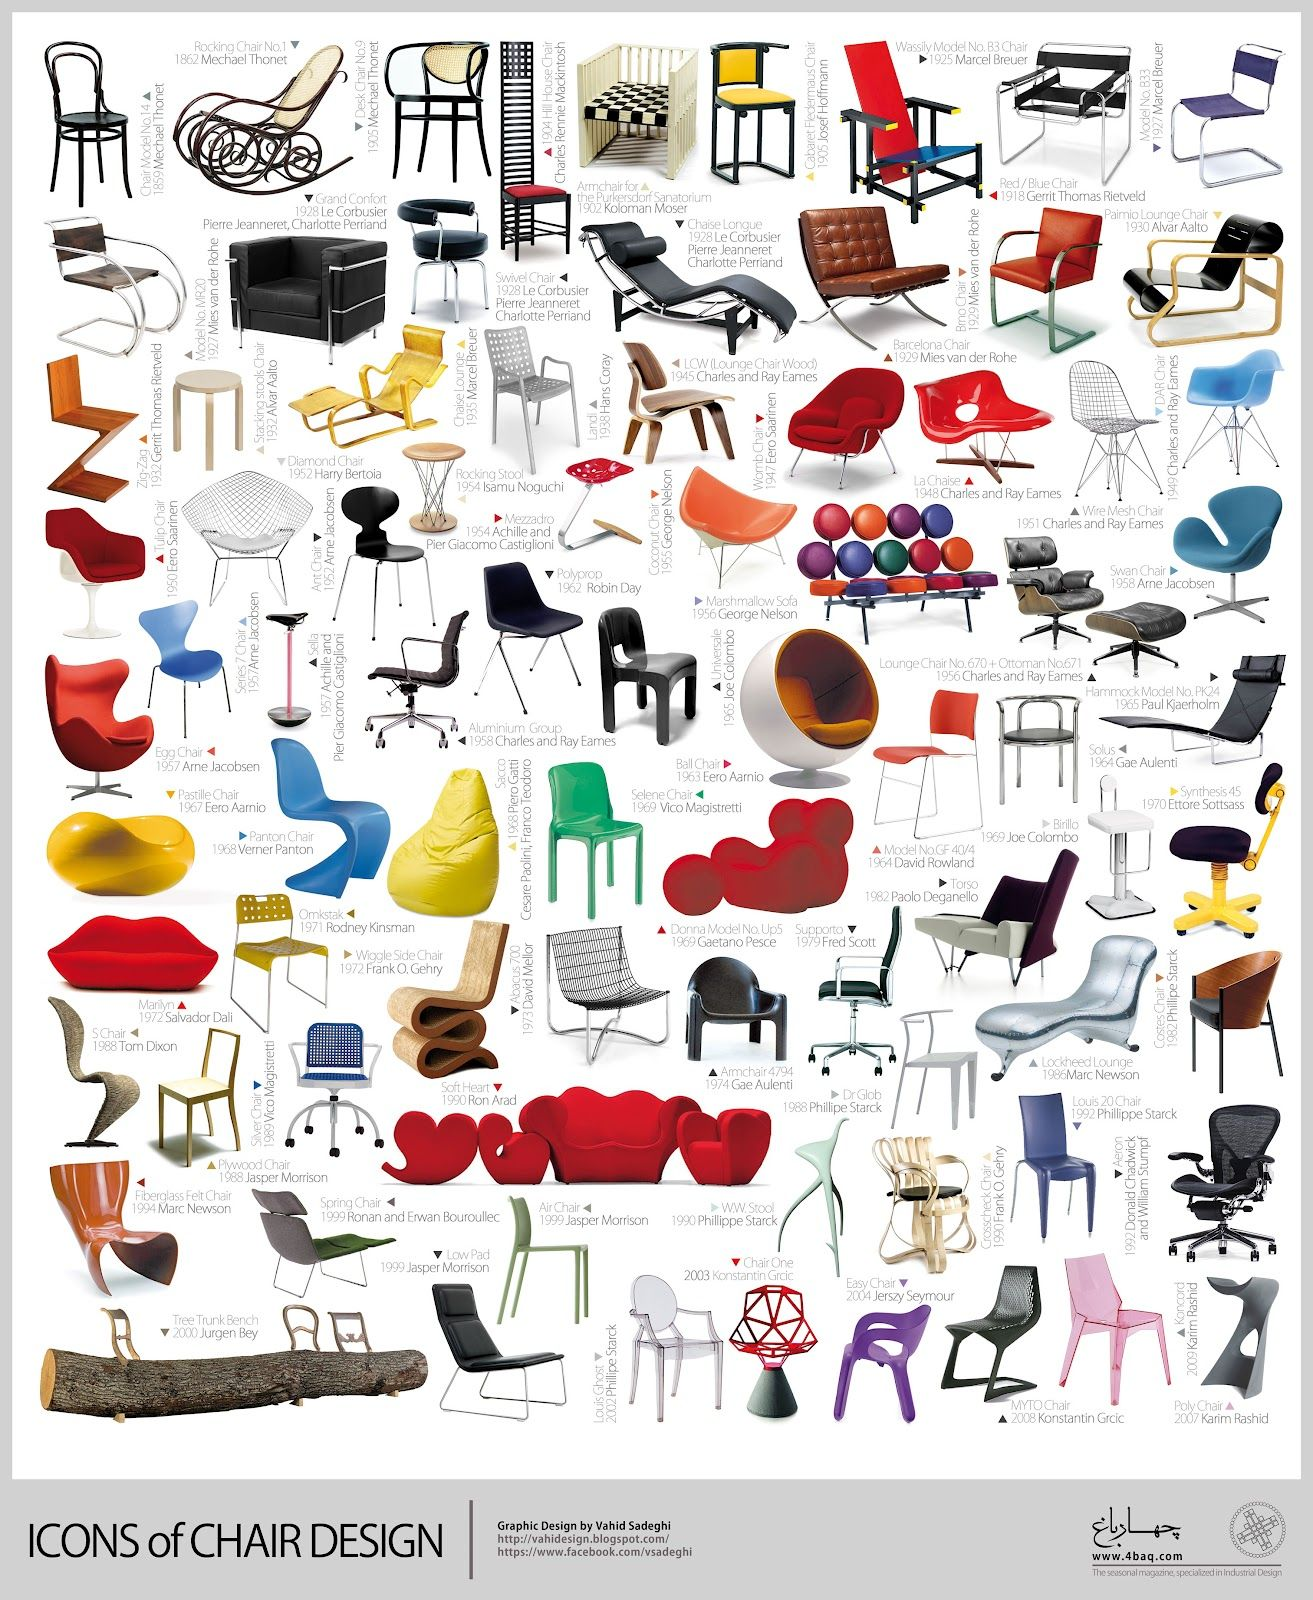 icons of chair design by vahid sadeghi at coroflotcom more - Iconic Chairs Design